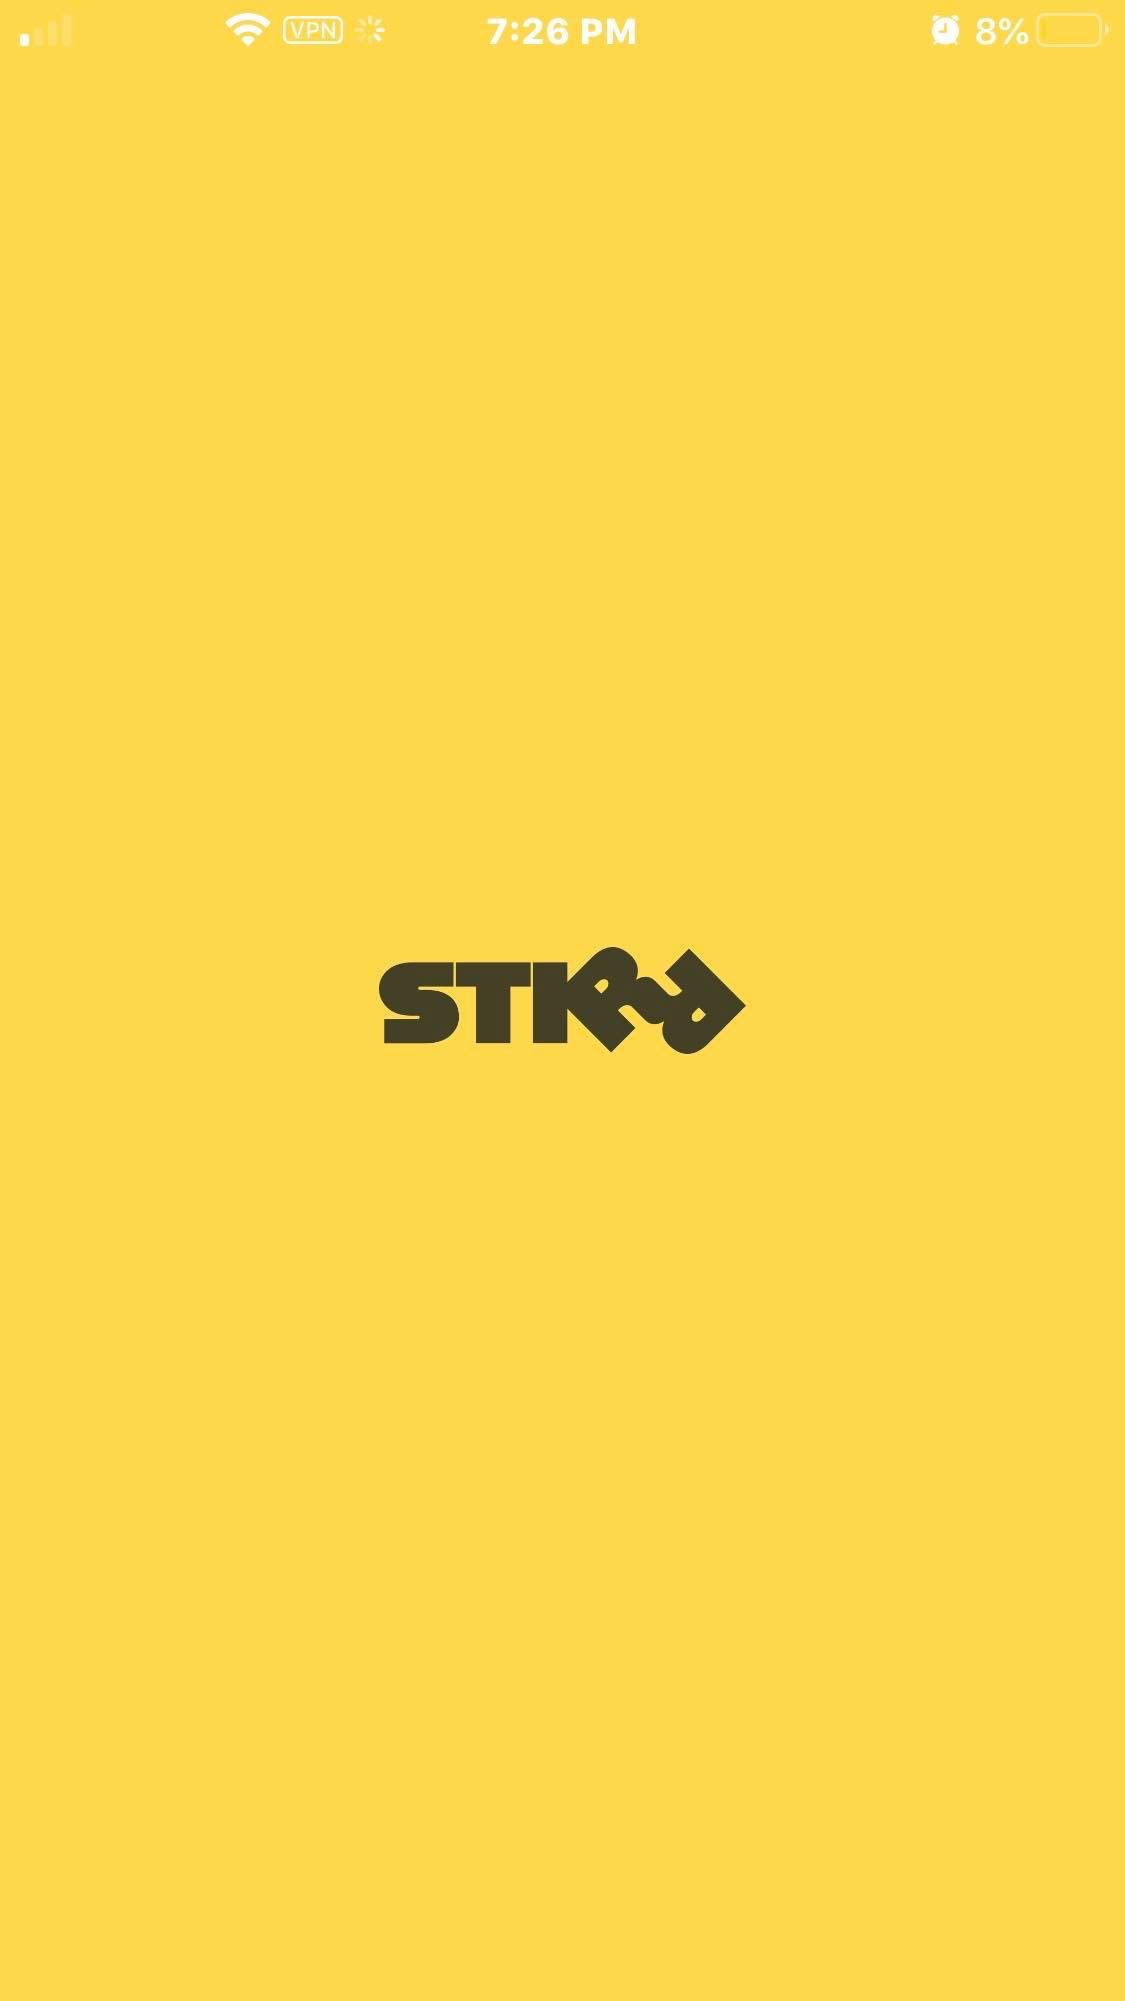 Step 6 - How to Install STIRR on iOS Device